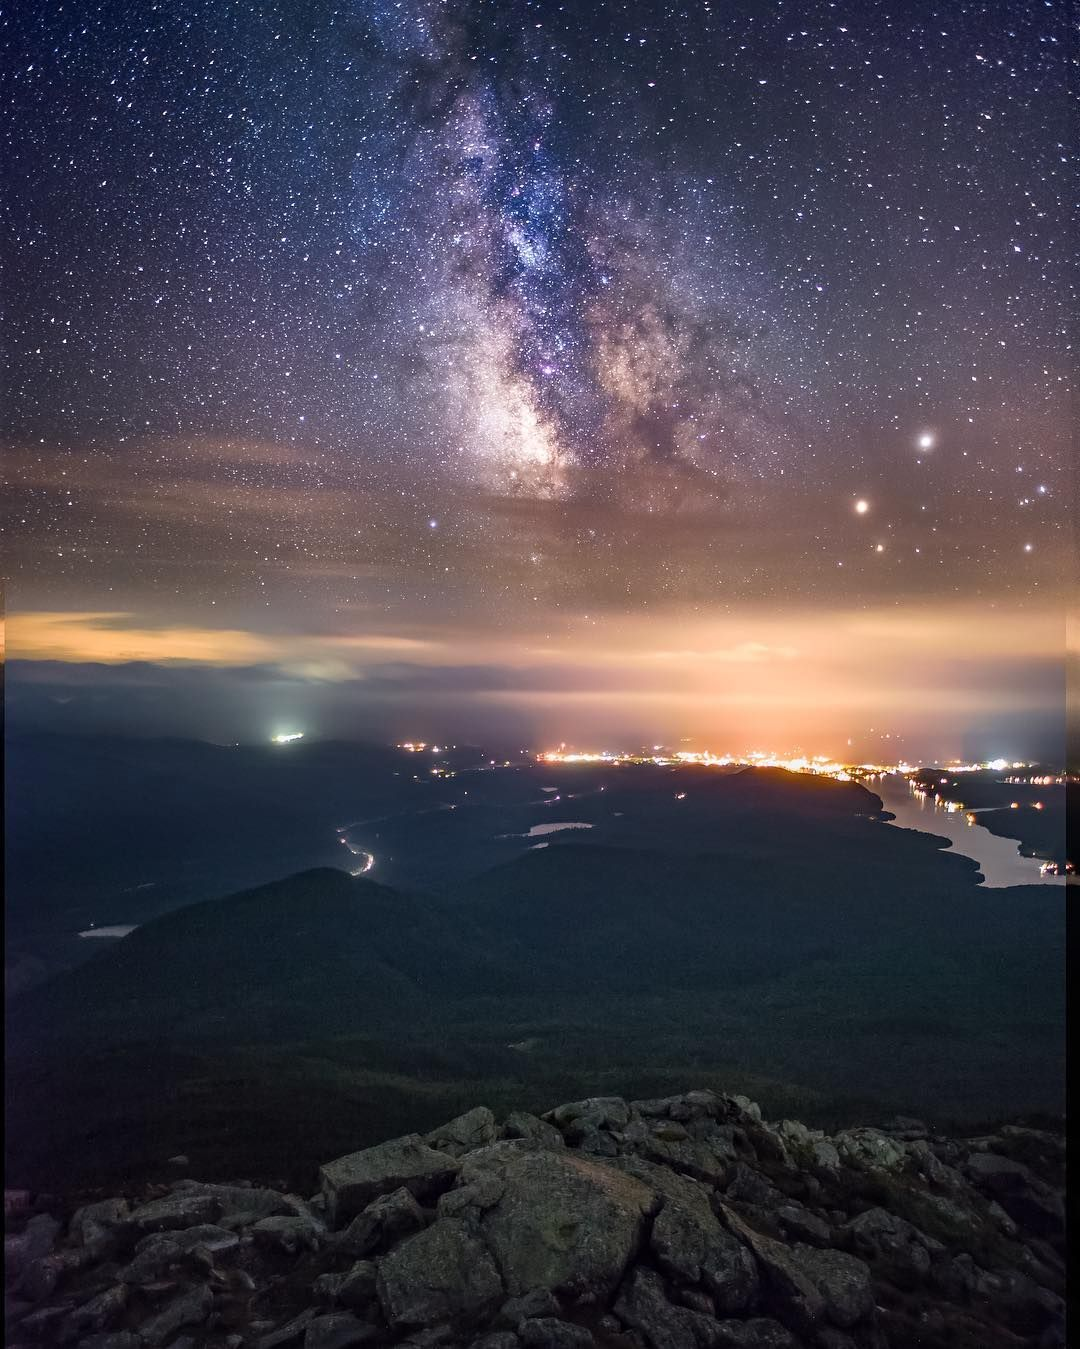 Econo lodge hotel in lake placid ny is near olympic sports complex, mirror lake, and lake placid village. Another Photo From On Top Of Whiteface Mountain In Lake Placid New York What A Breathtaking View Of Our Milky Wa Whiteface Mountain Night Sky Stars Milky Way